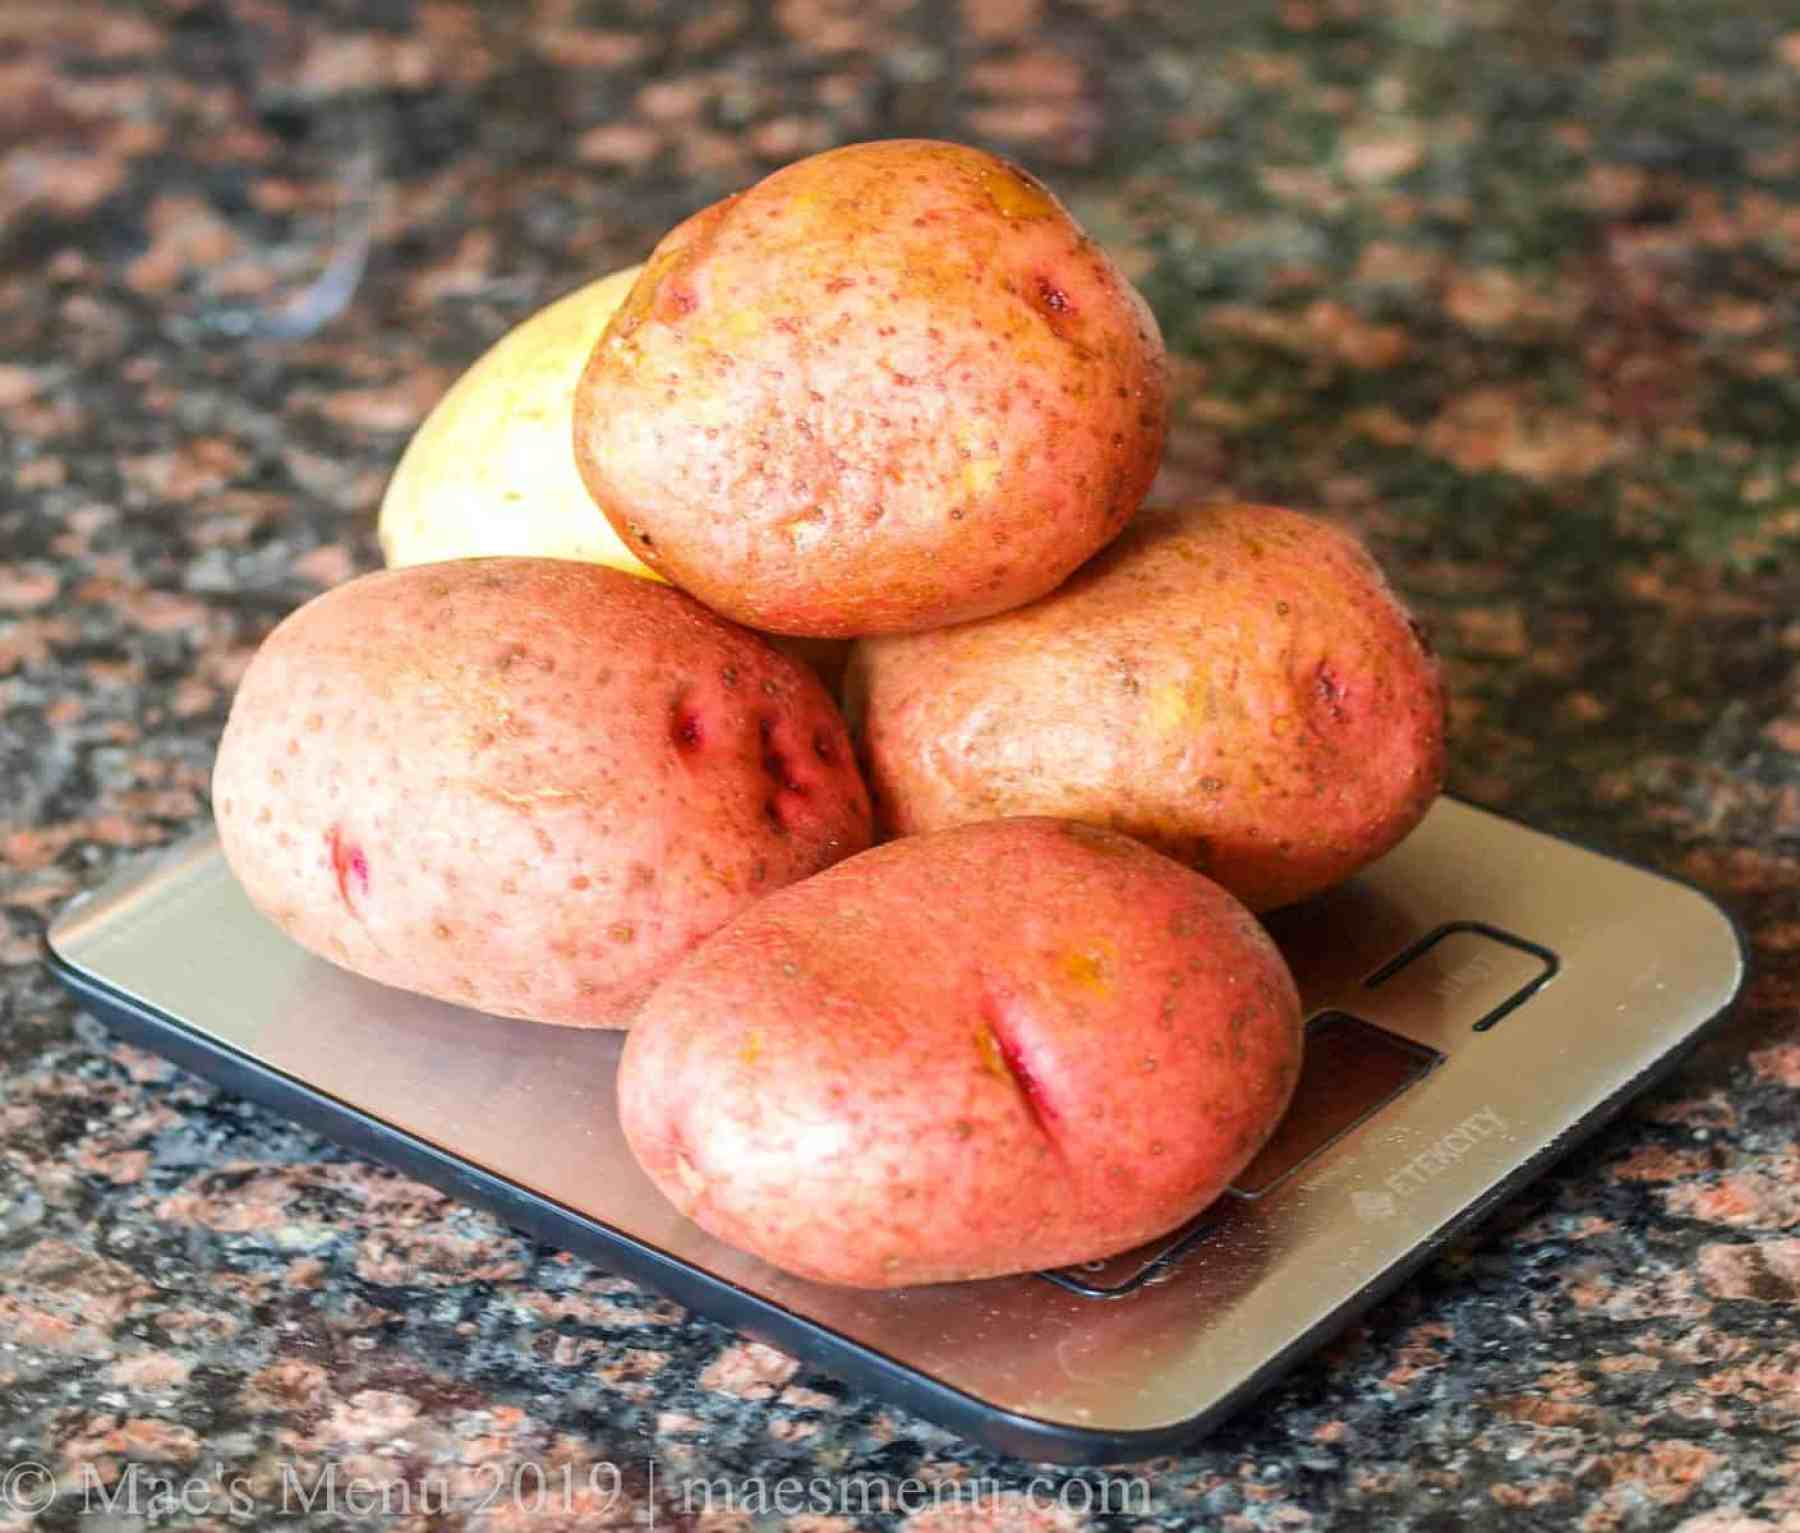 Yukon and red potatoes on a scale.